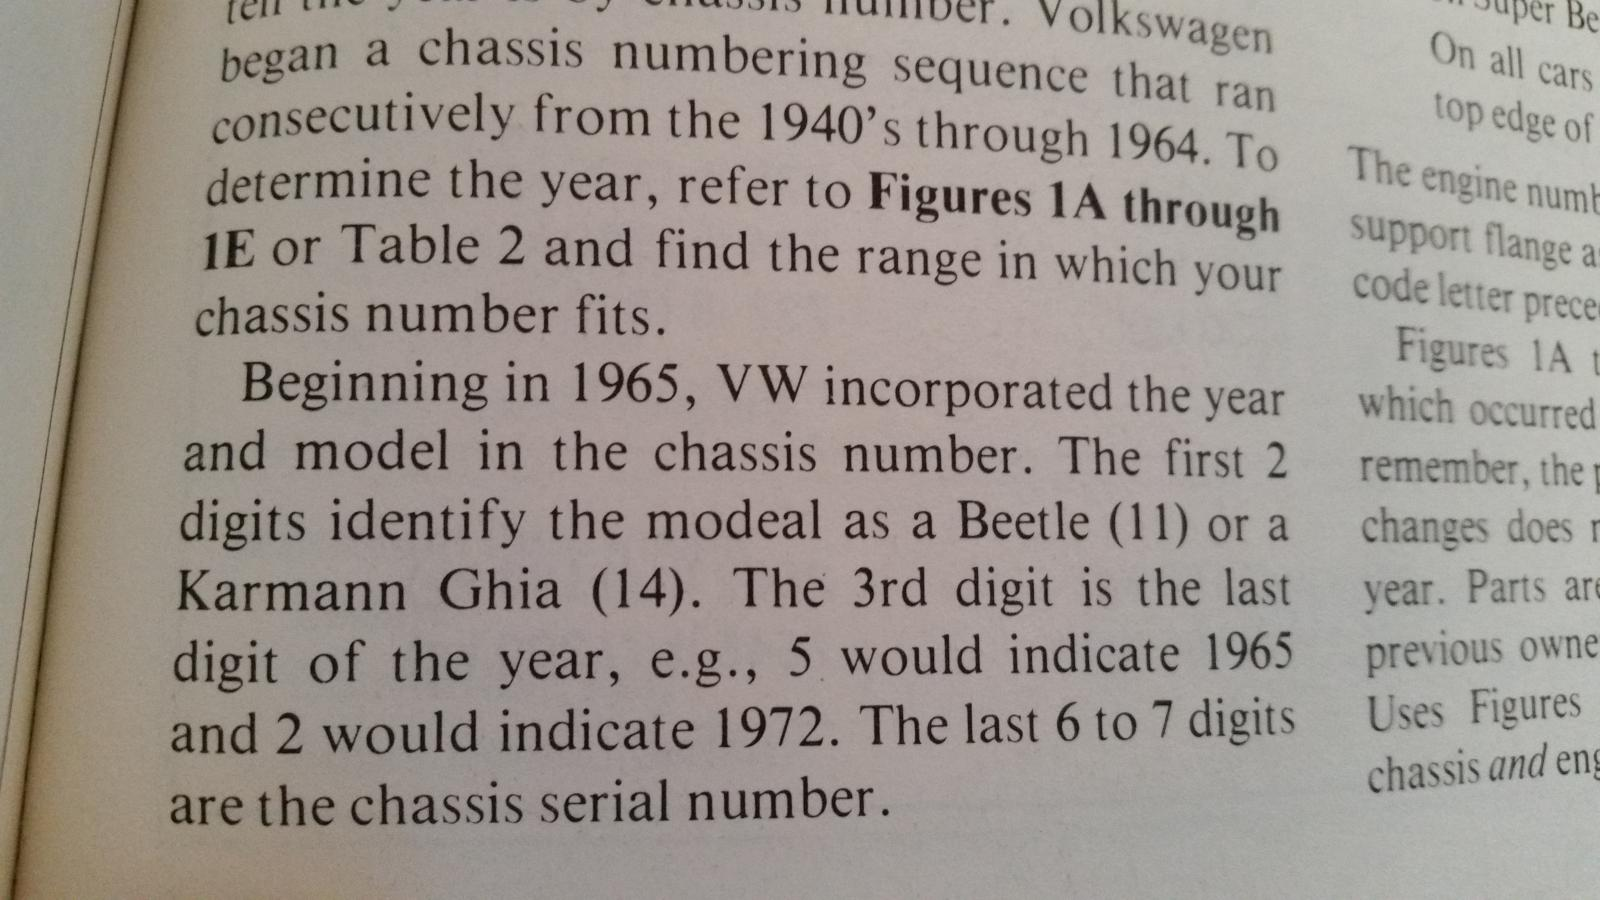 Model number being incorporated into VIN number starting 1965 quote